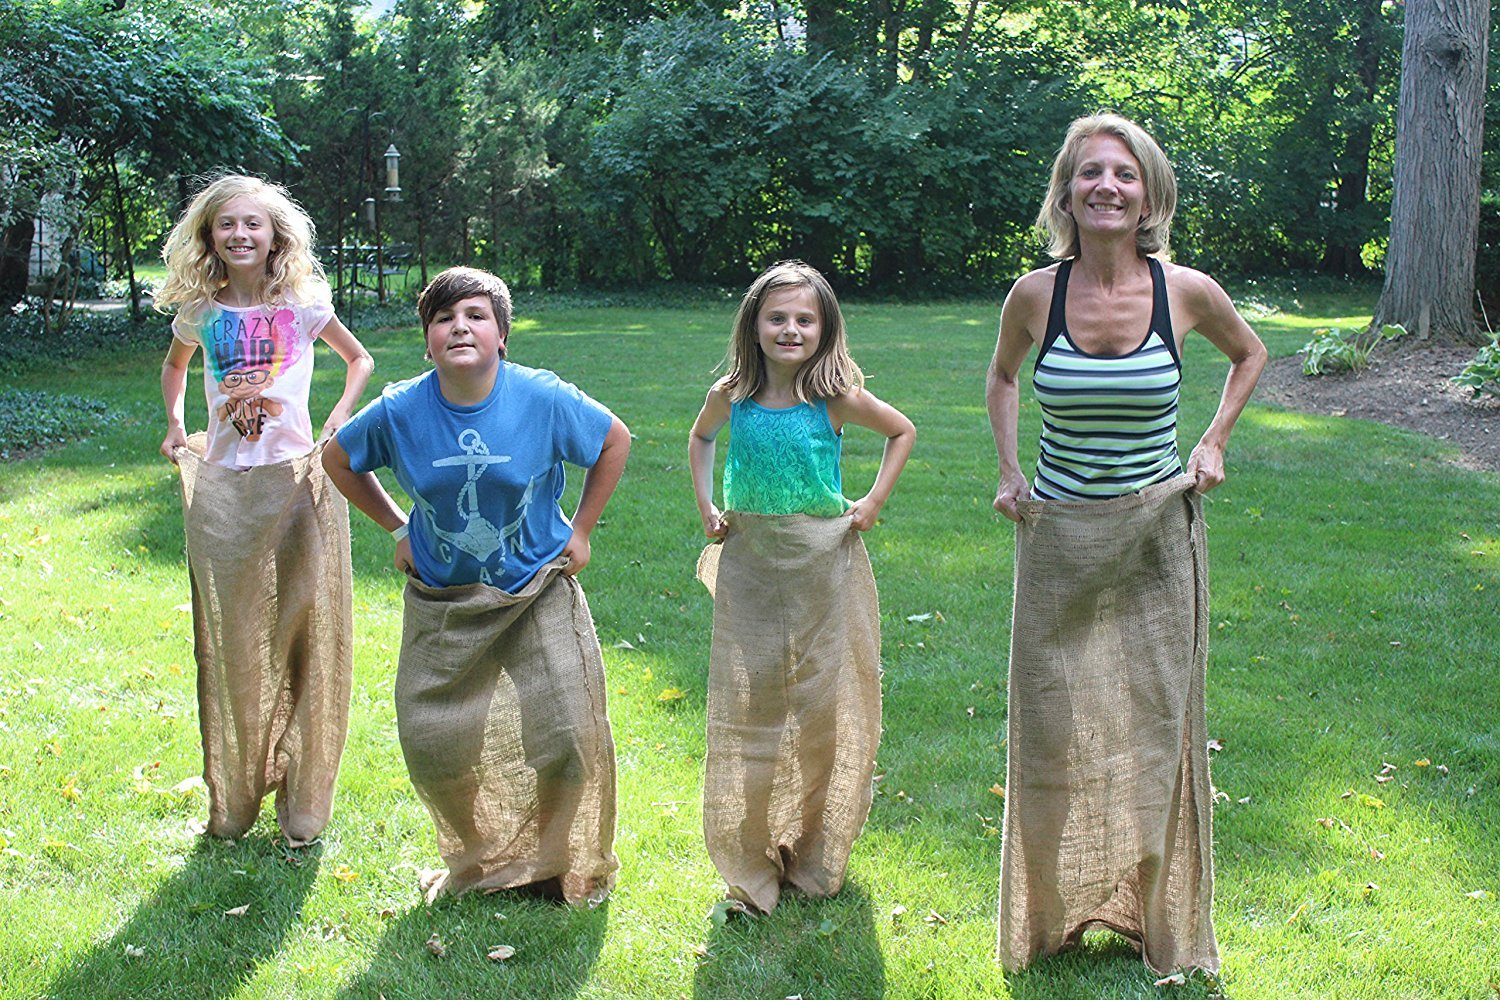 - Burlap Sacks on Amazon can be found here